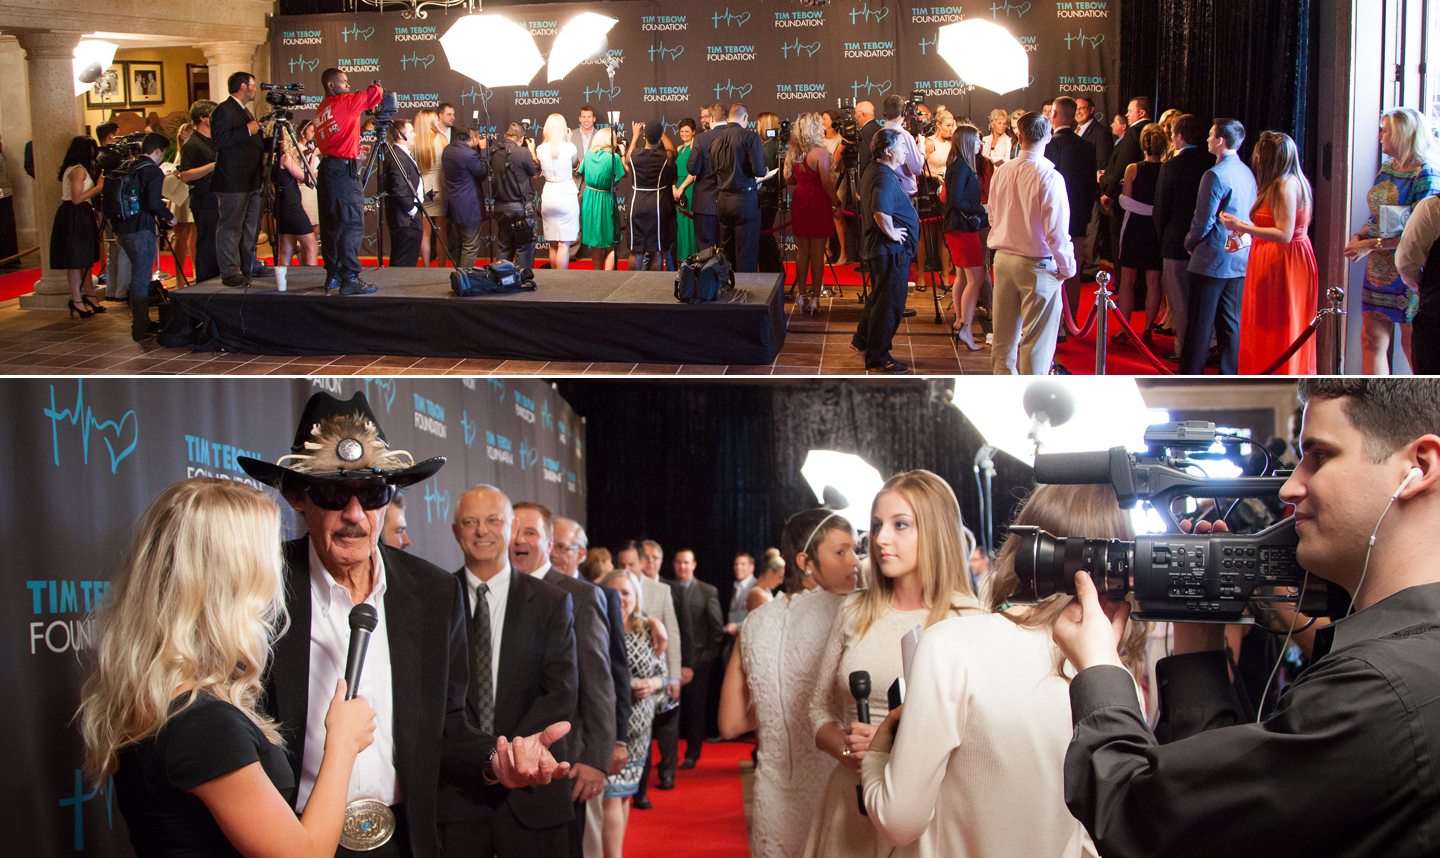 Red Carpet Entrance for the 2014 Tim Tebow Foundation Gala